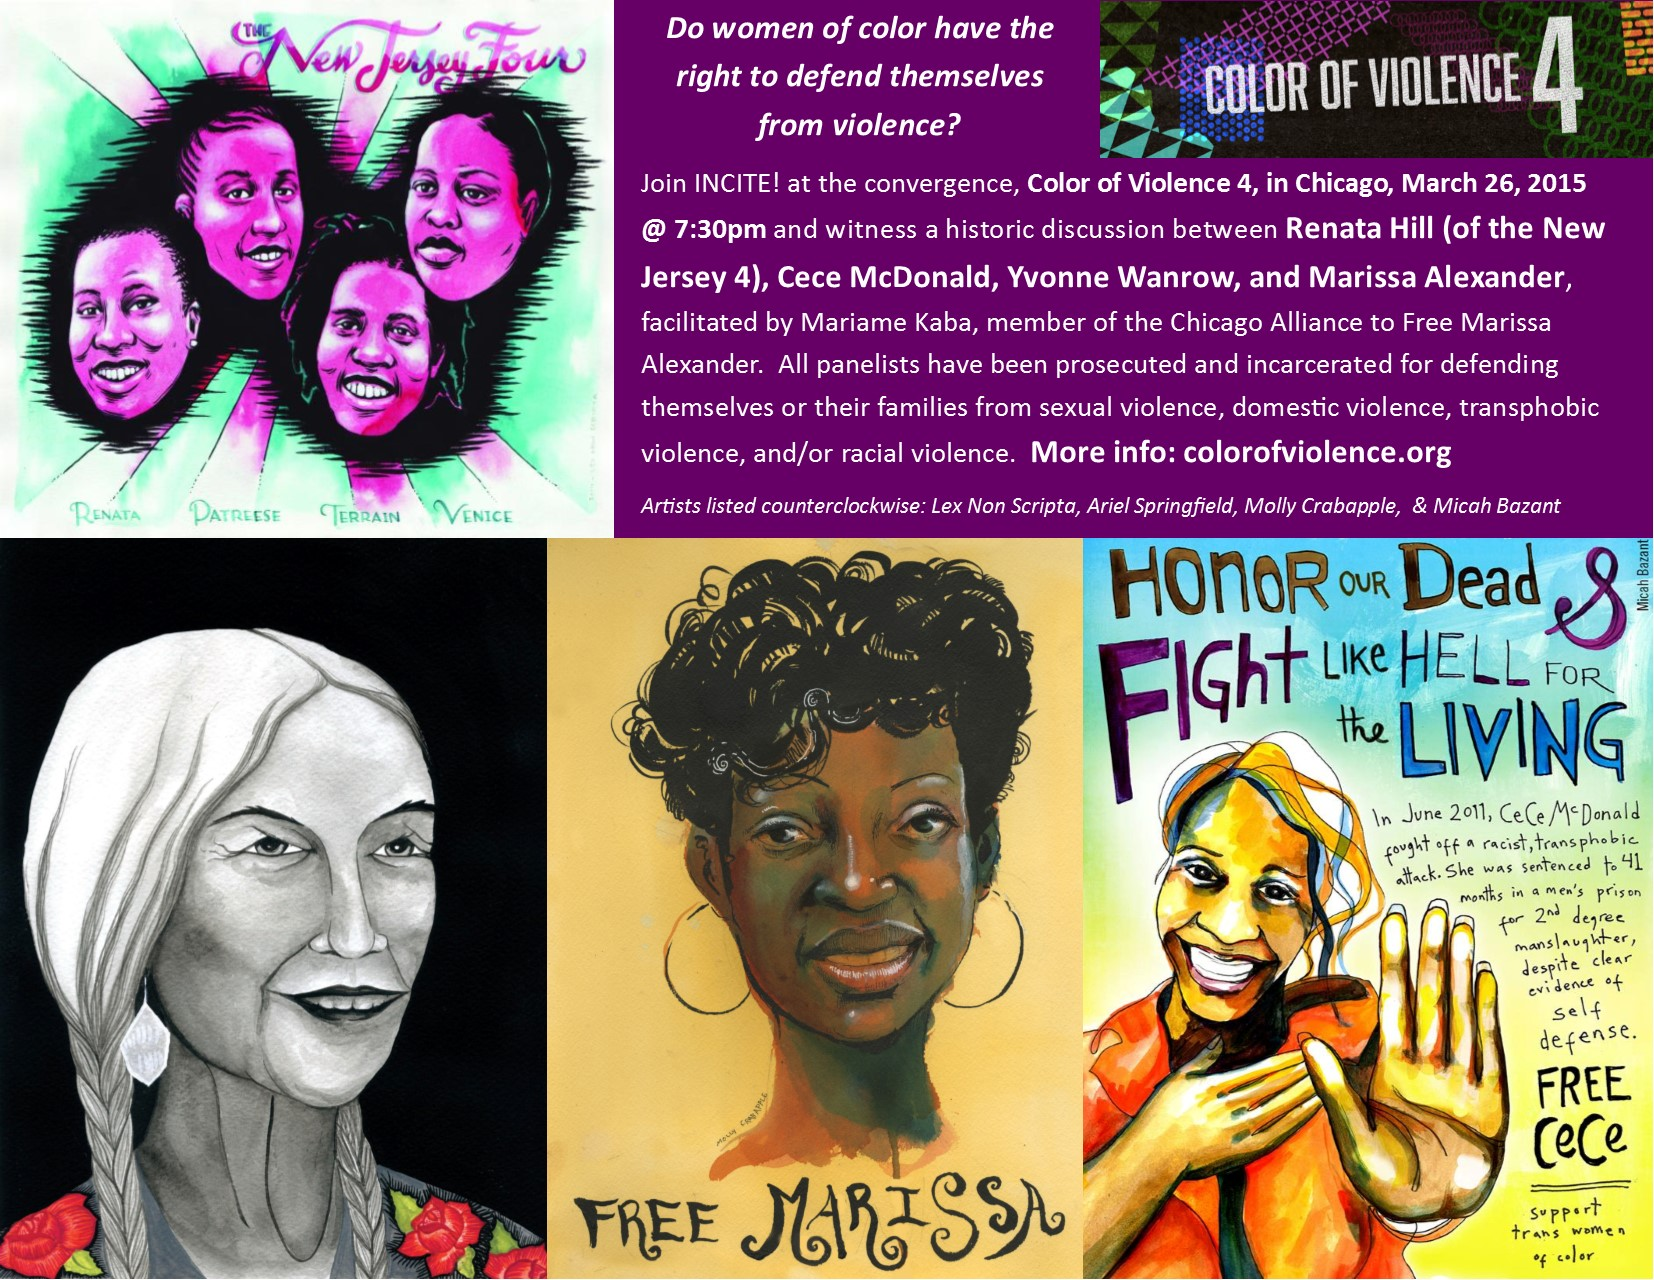 INCITE Women of Color Against Violence